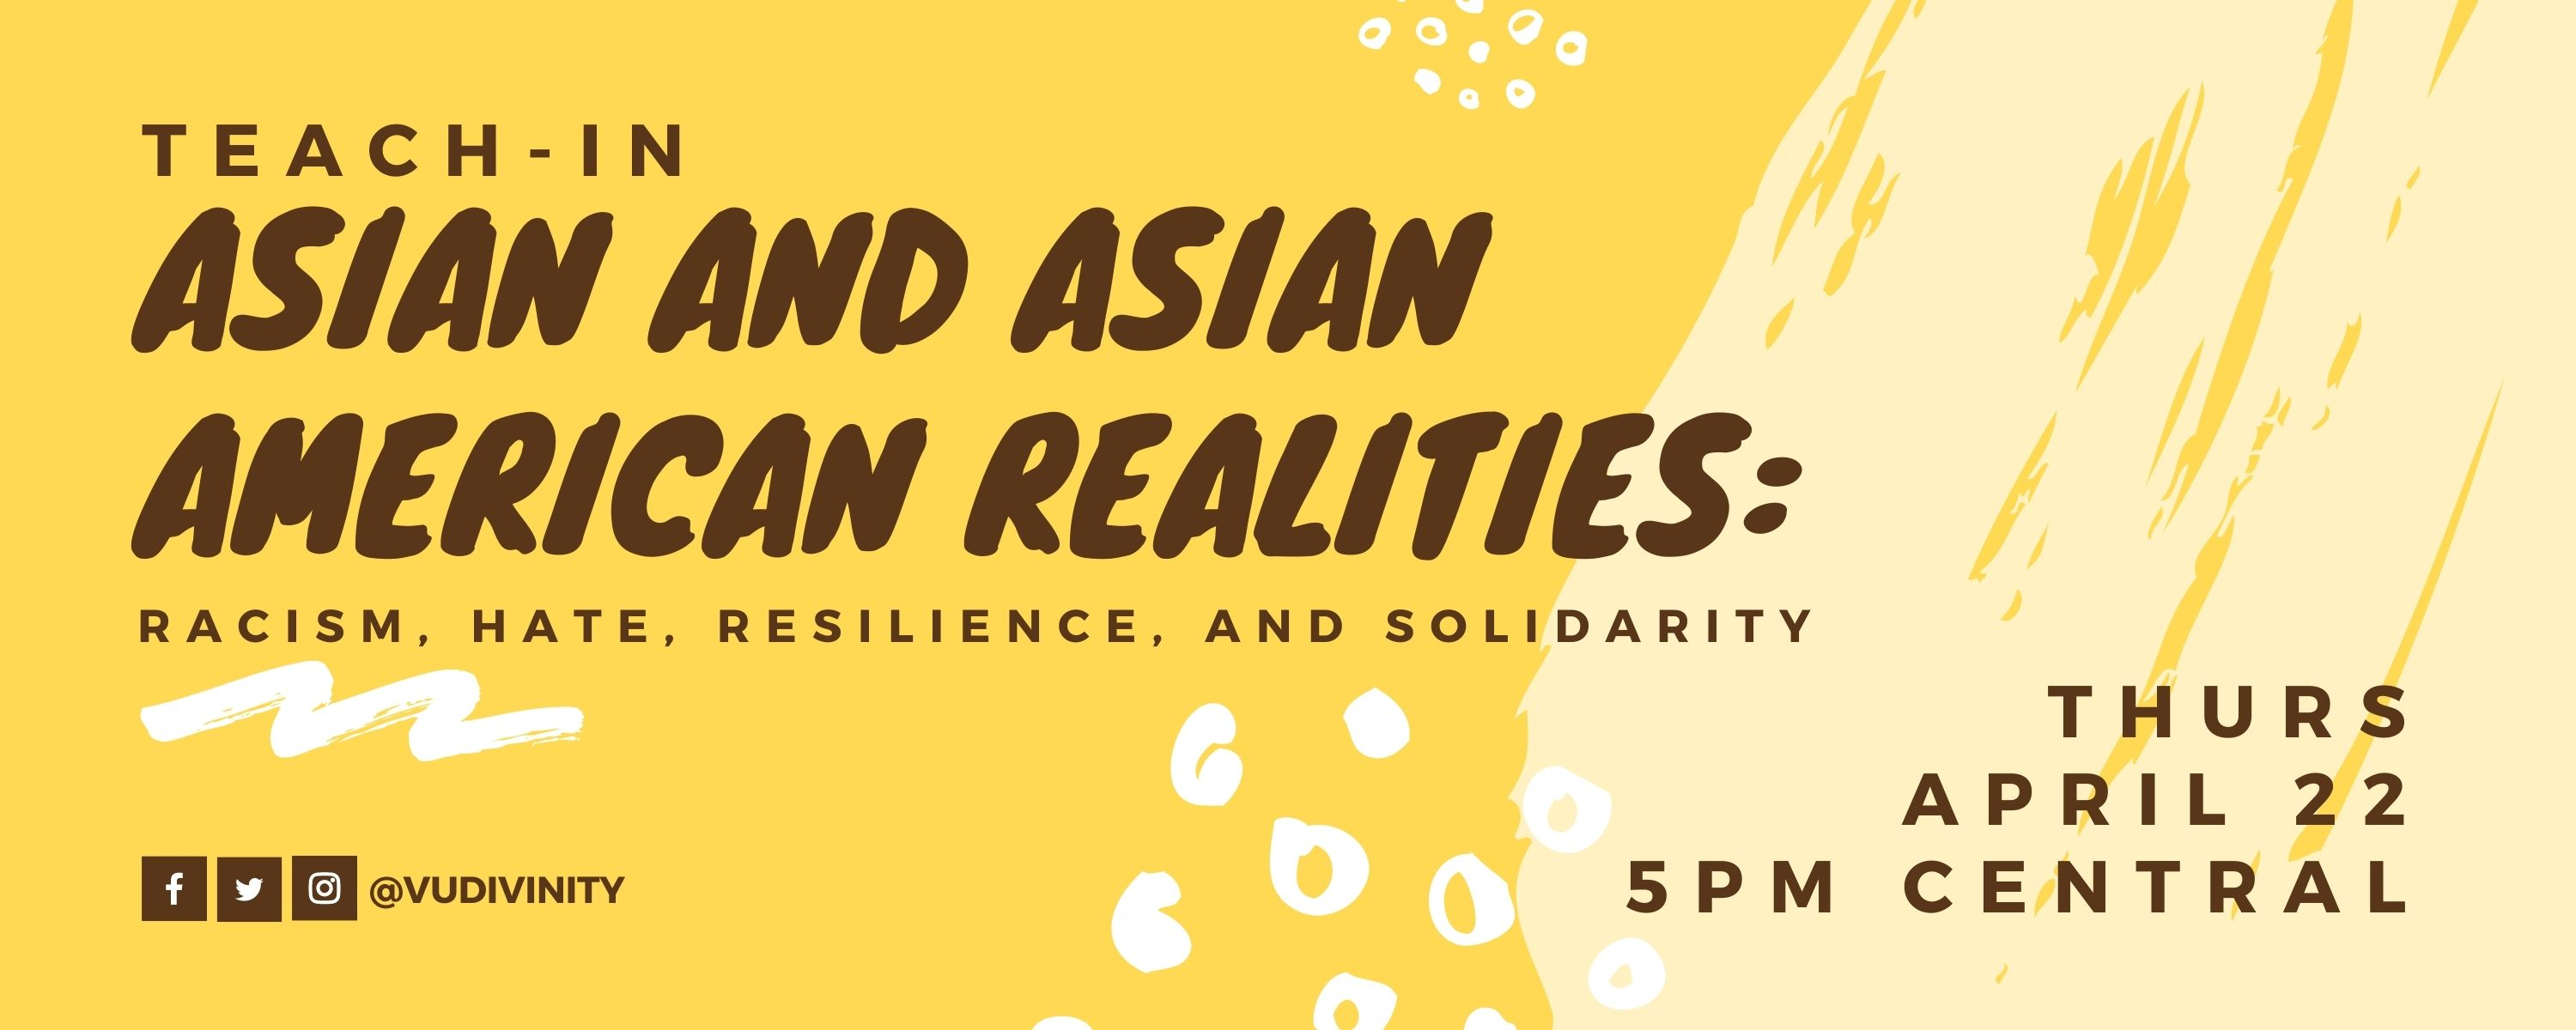 asian american realities: teach in